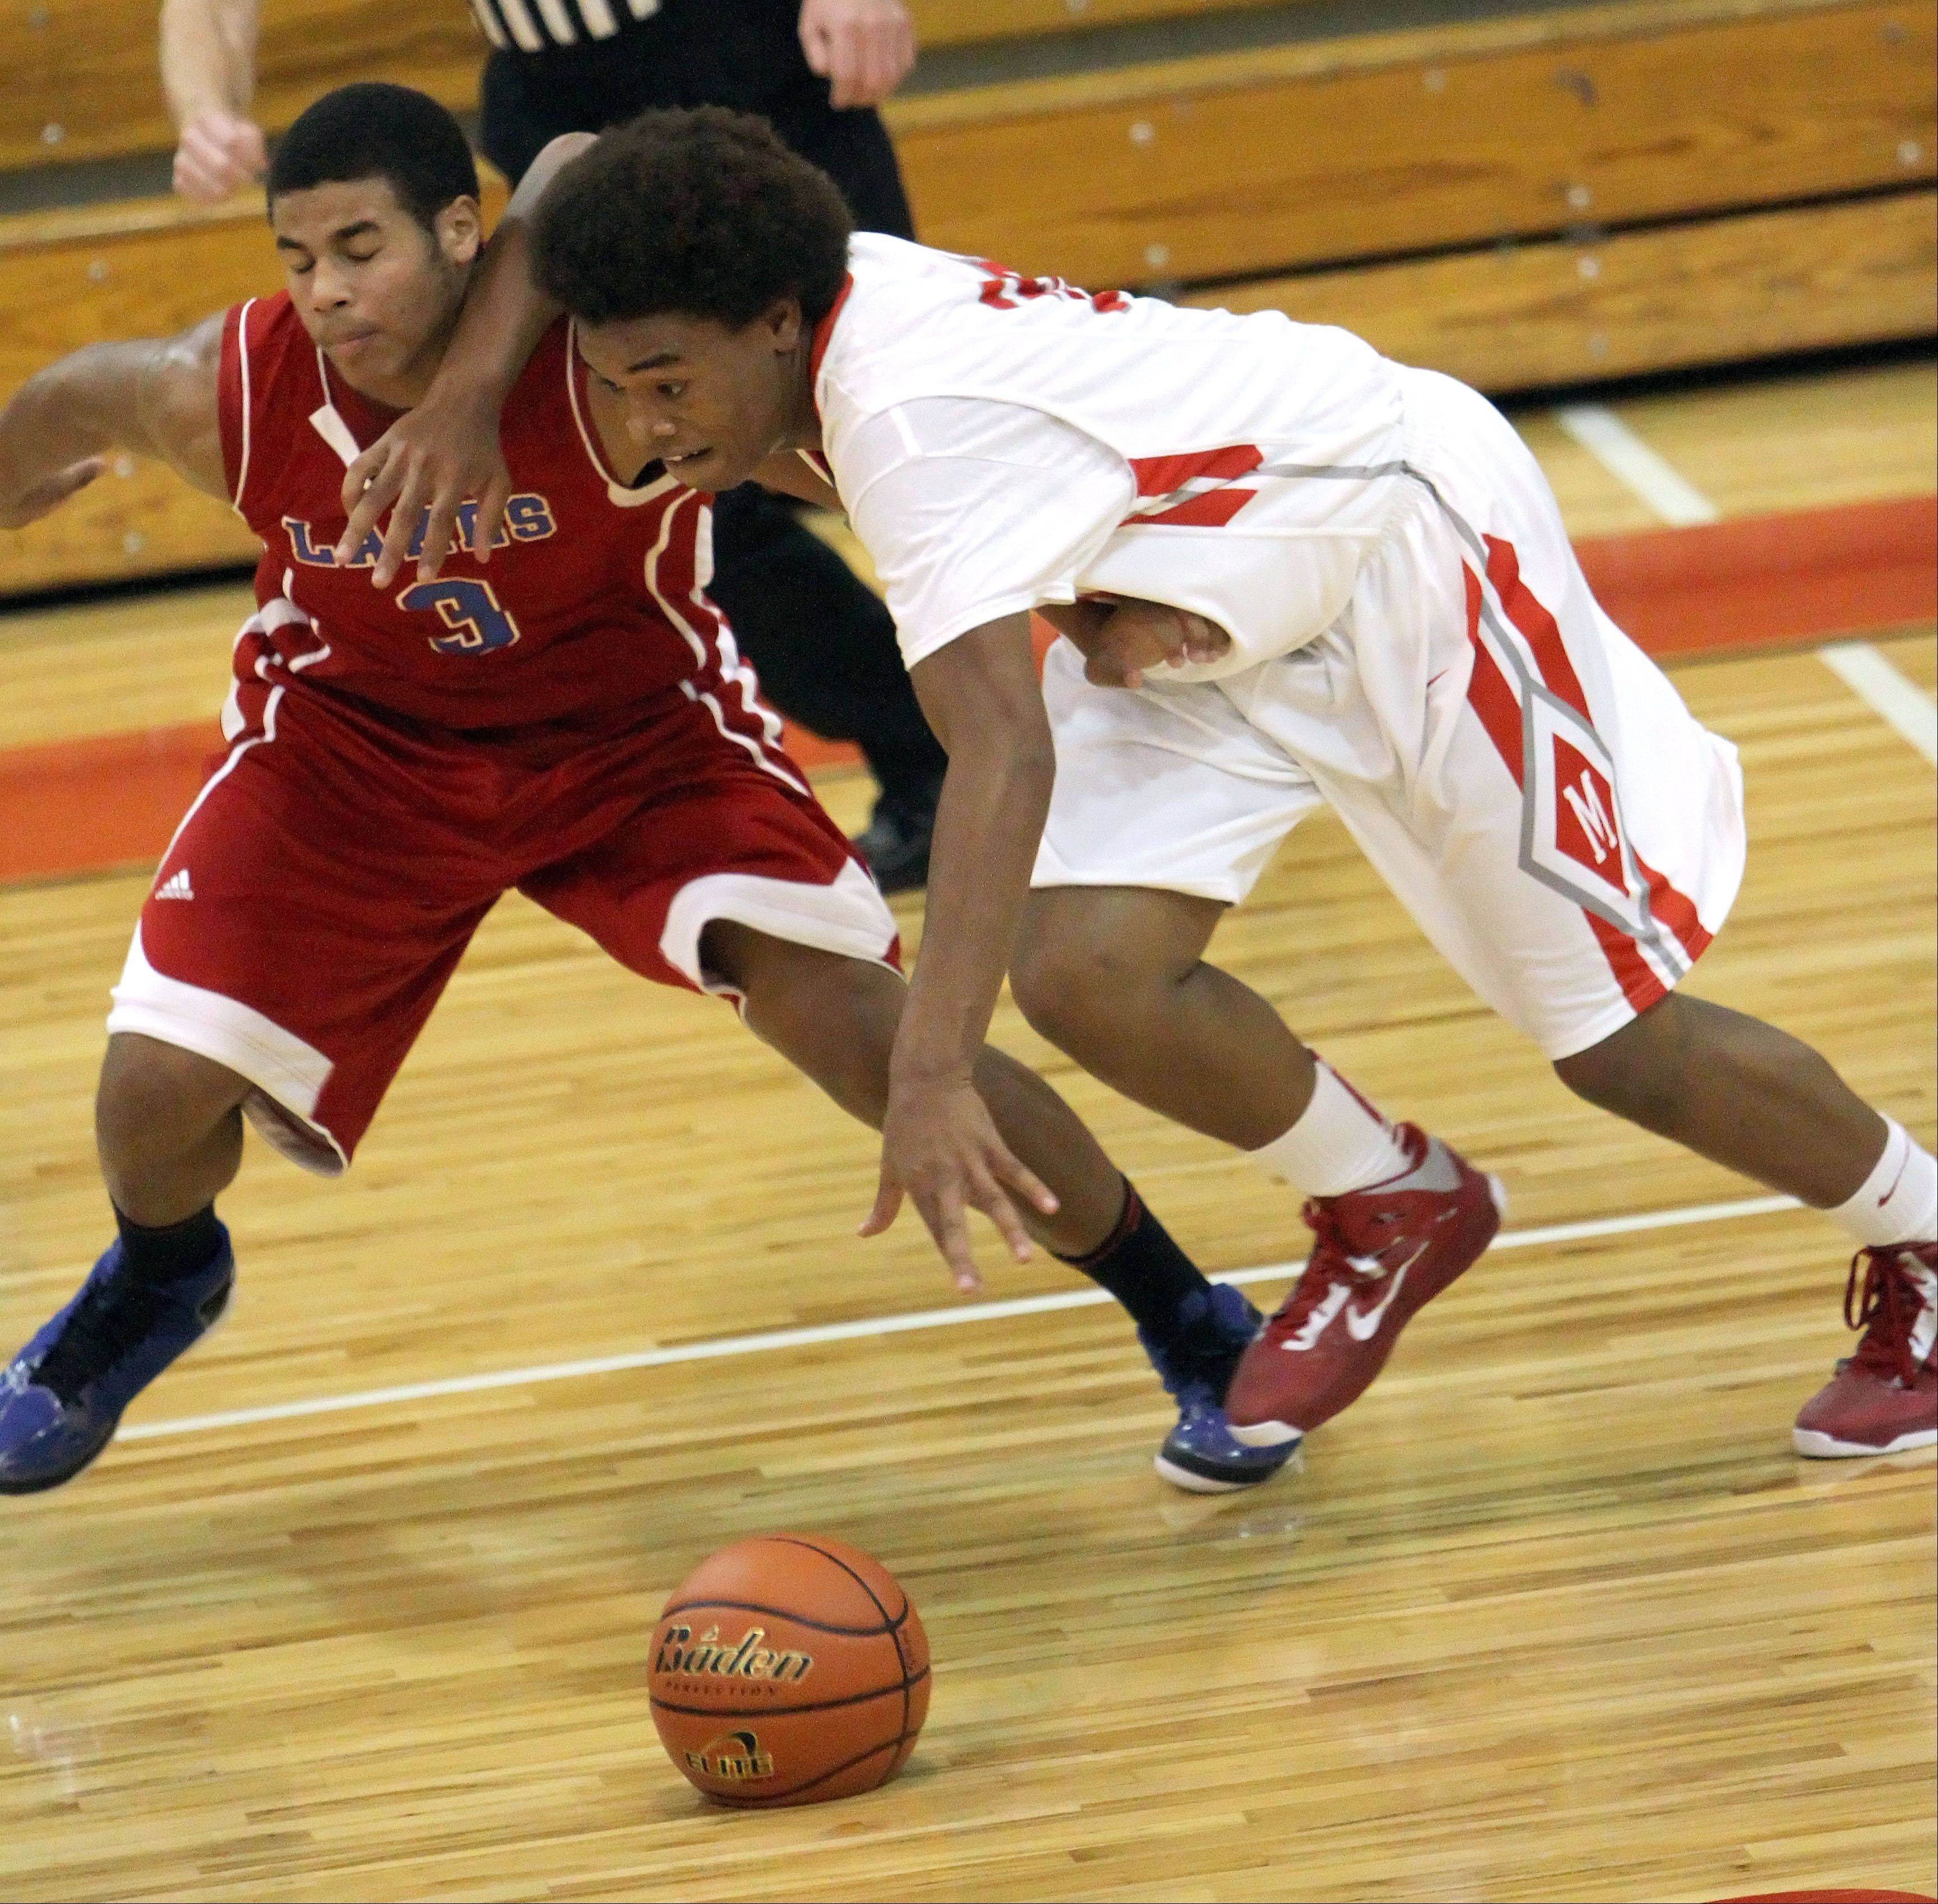 Mundelein's Nate Williams, right, drives on Lakes' TJ Edwards Tuesday night at Mundelein High School.